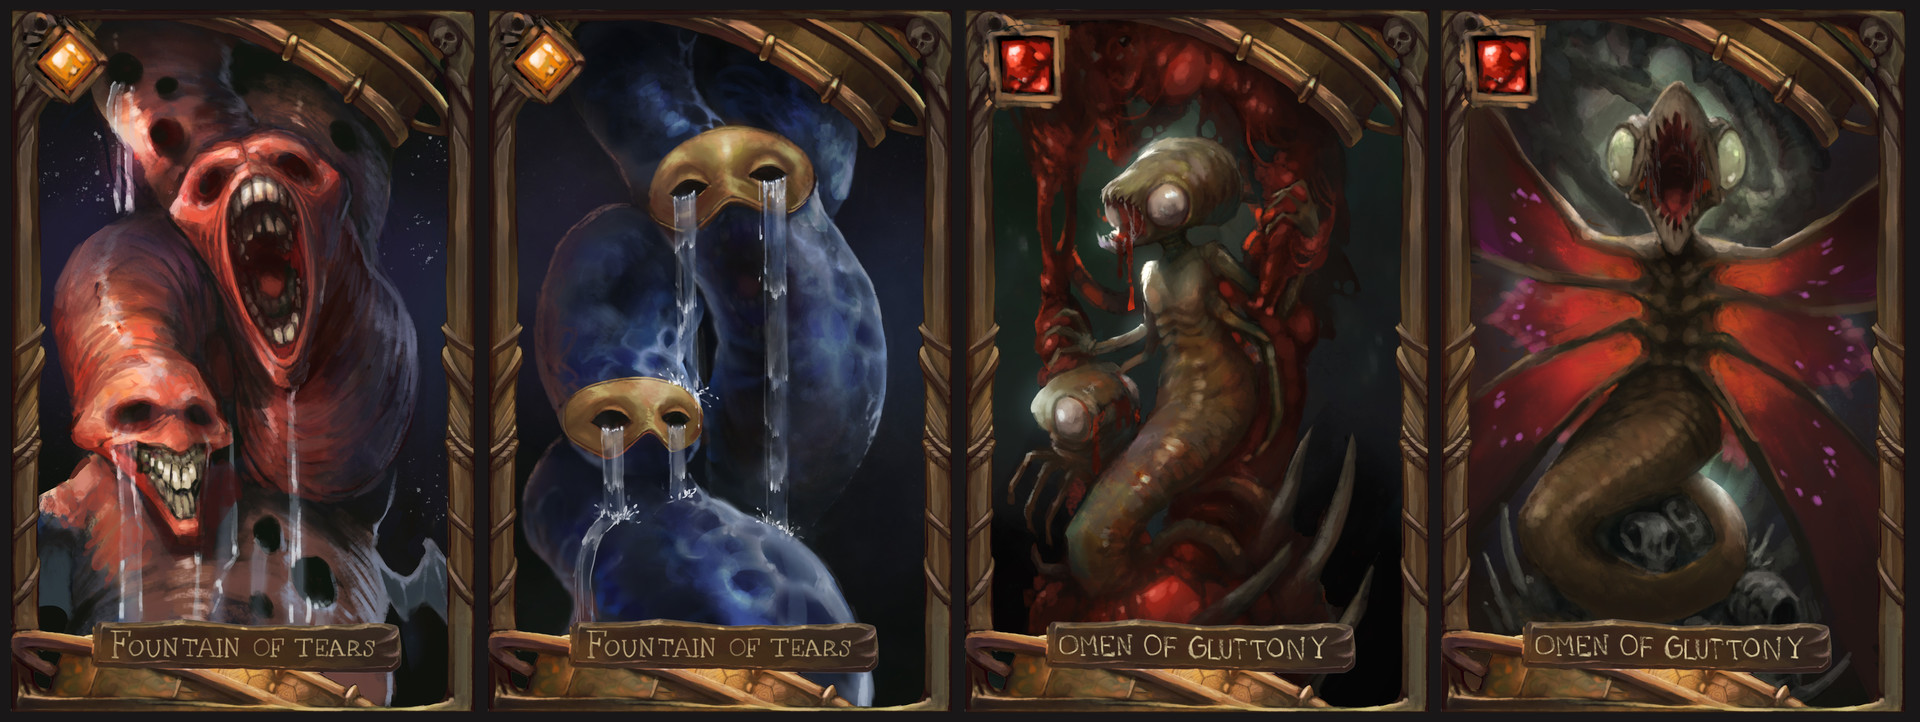 At one point I thought about making the cards into pairs of illustrations. Fountain of Tears is about grief, Omen of Gluttony is about parasites.